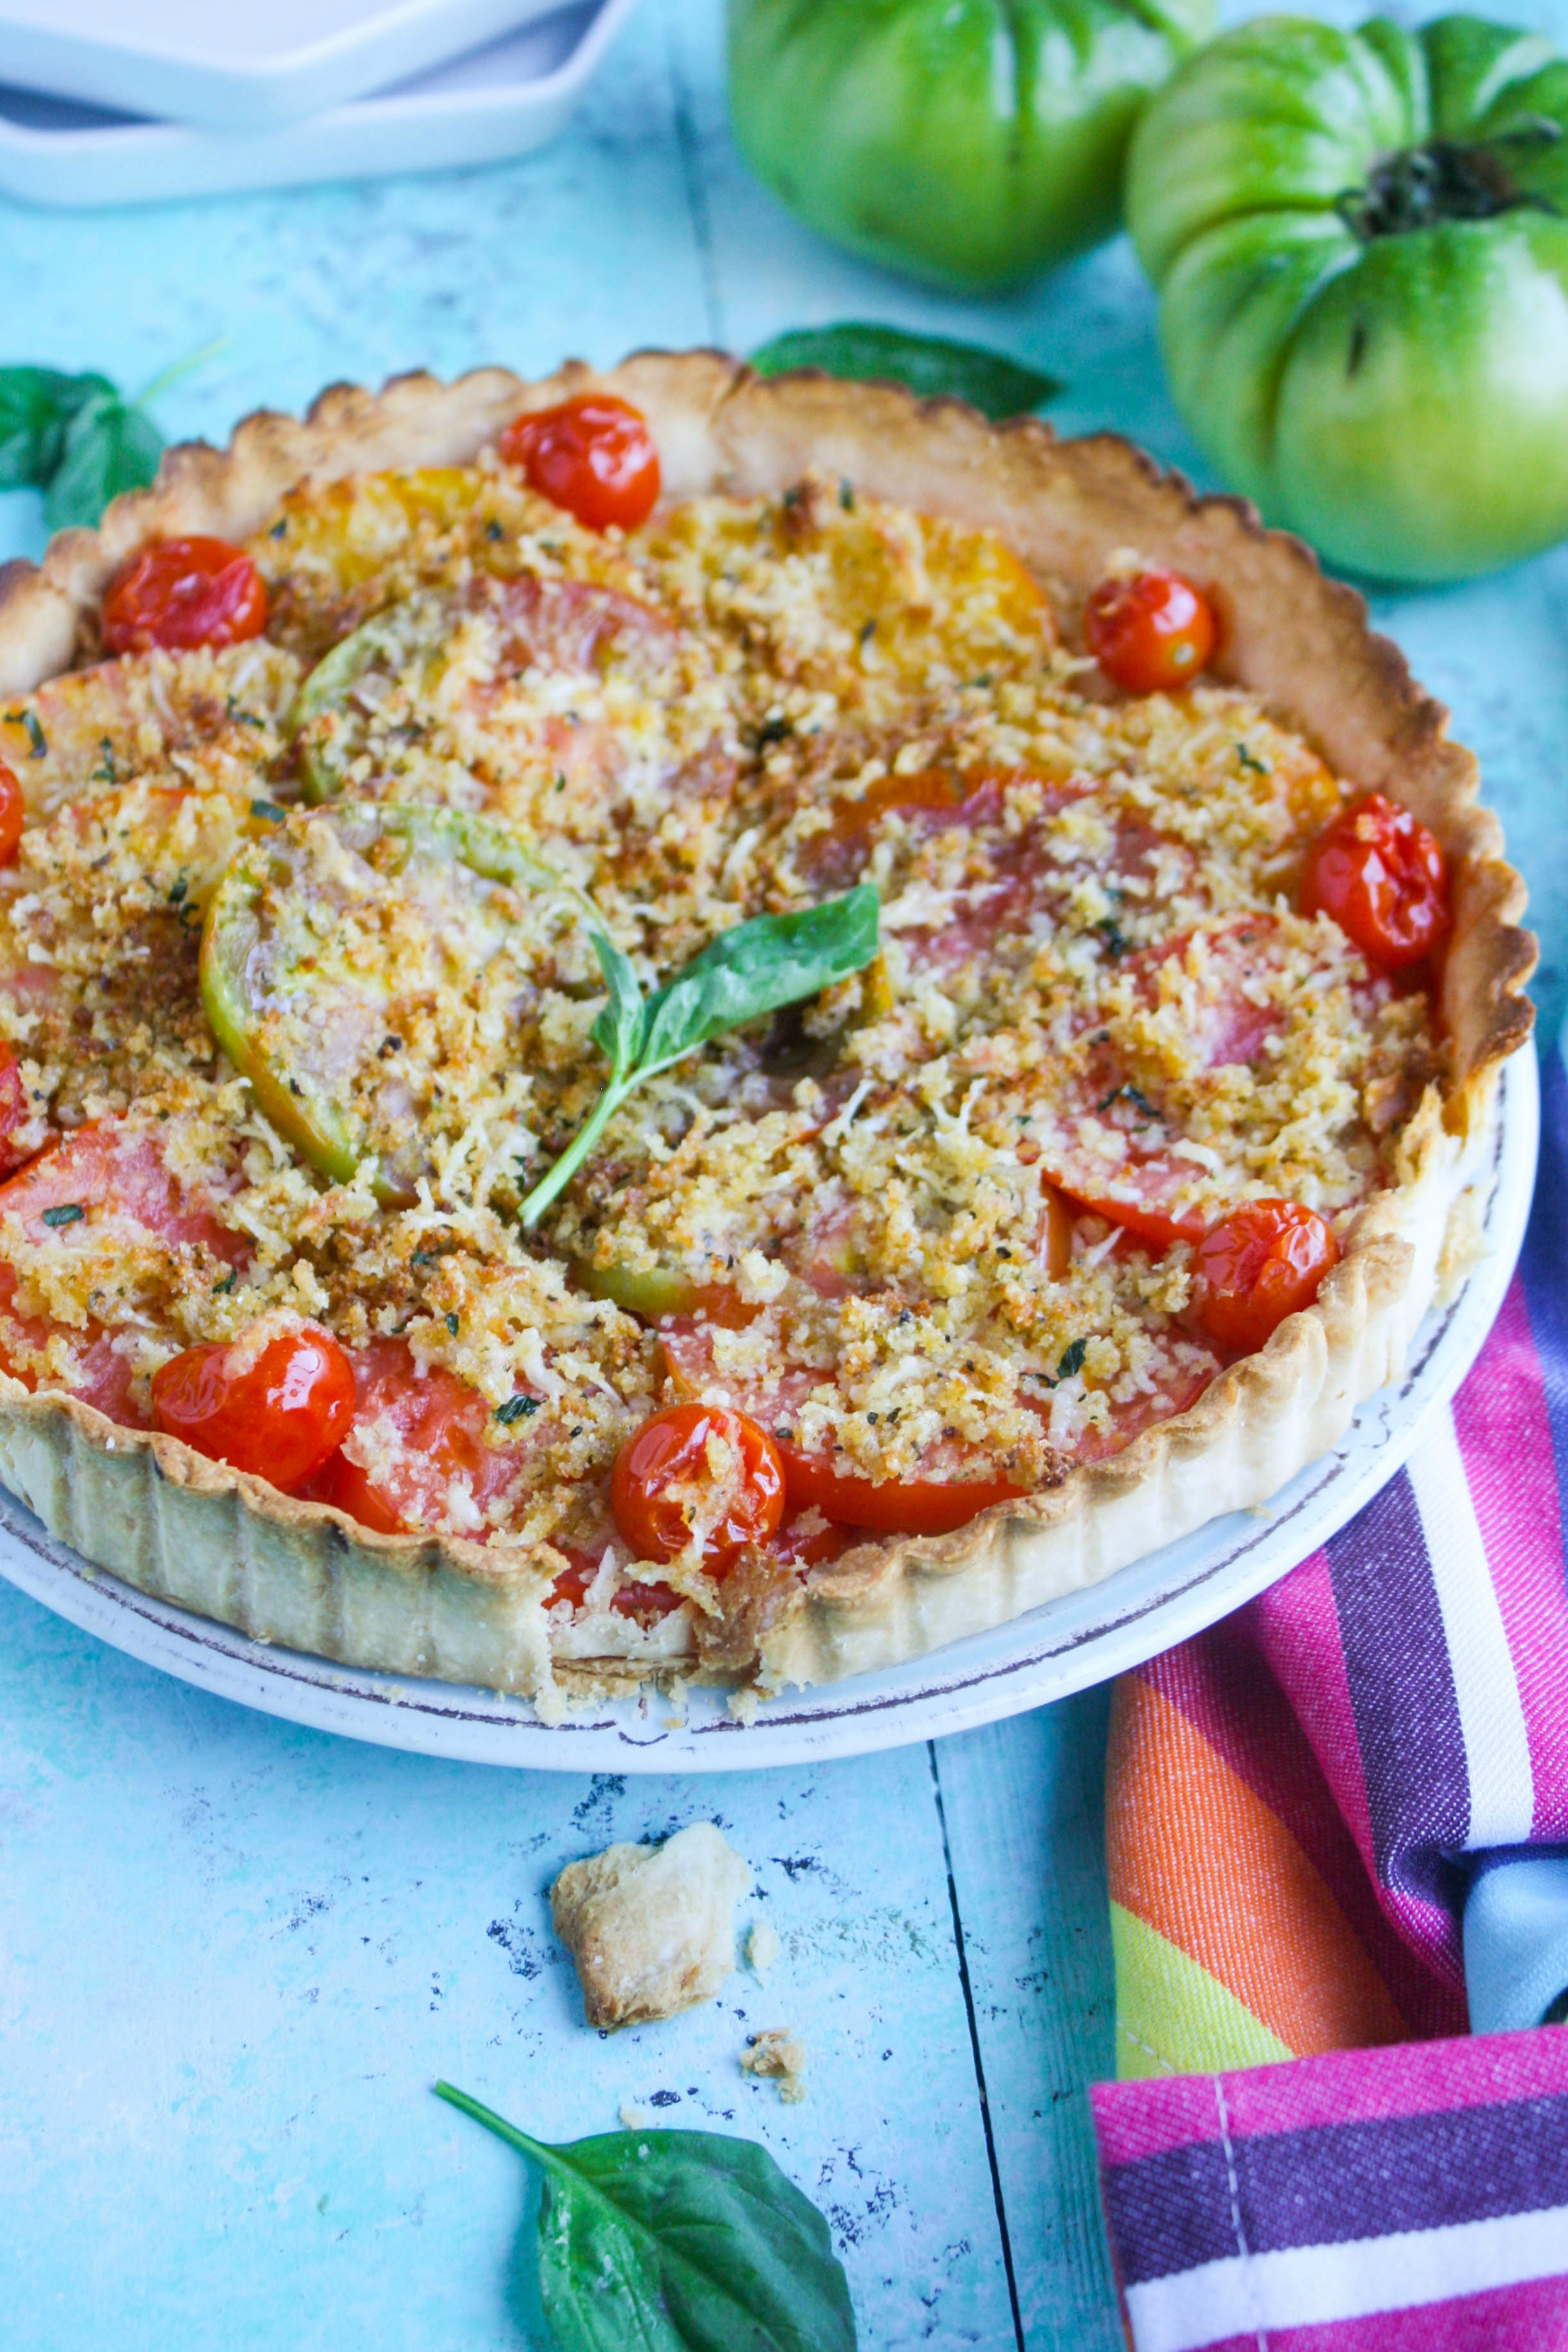 Tomato Tart with Cheesy Breadcrumbs is a wonderfully simple and flavorful dish you need to make before the summer is over! This simple tart is big on flavor.